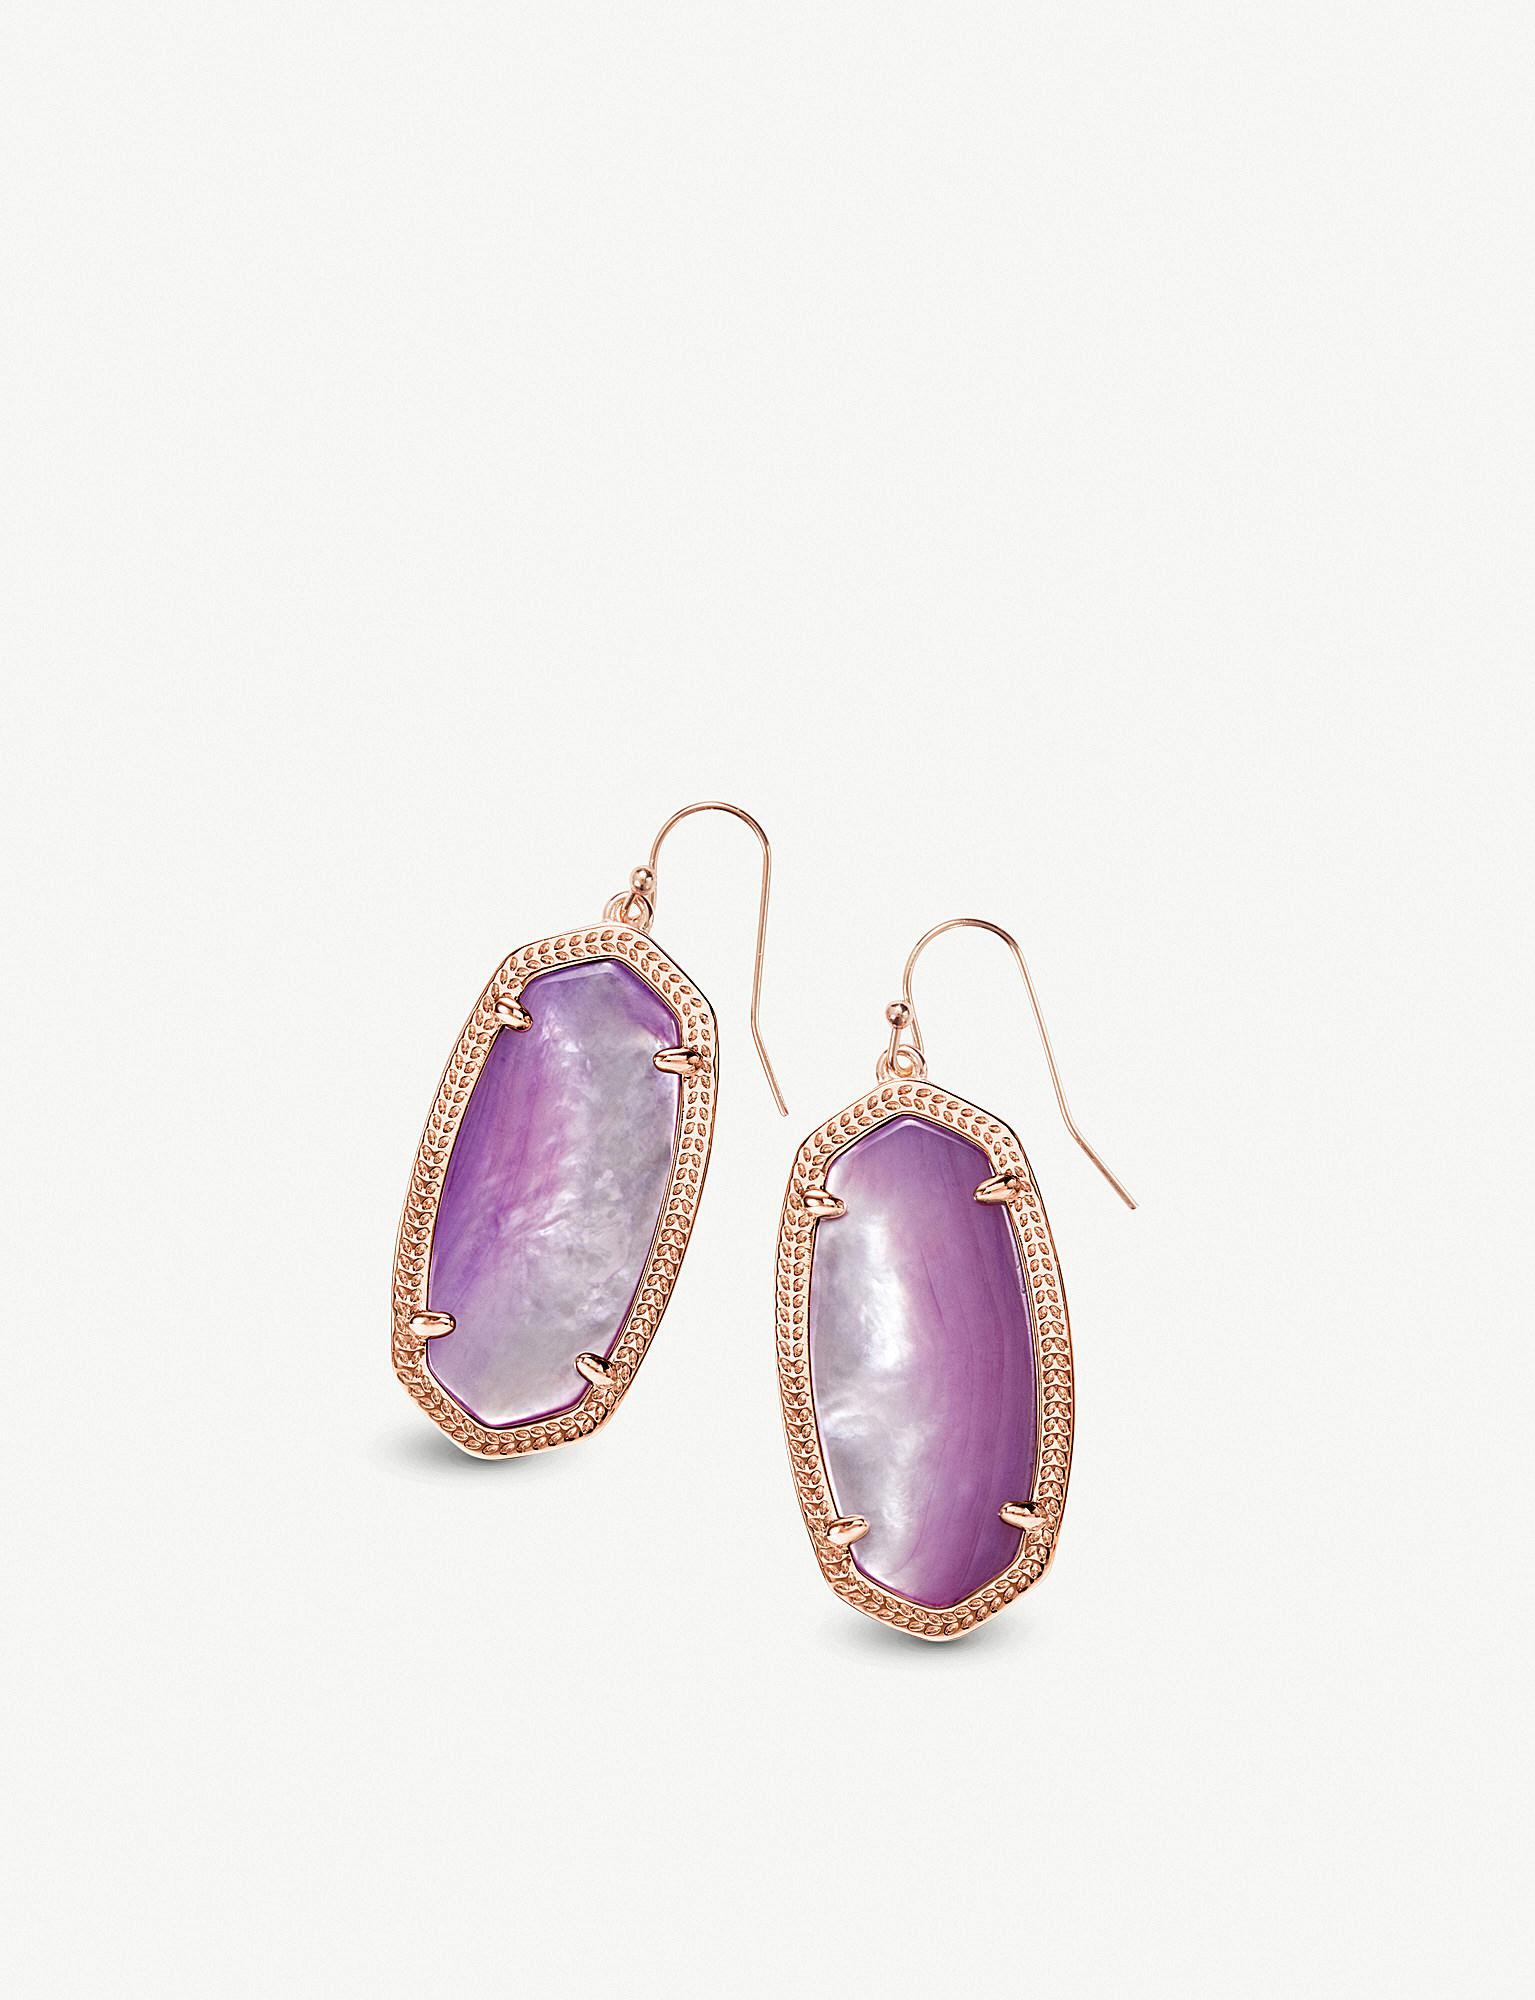 98ad2a40b Kendra Scott. Women's Elle 14ct Rose Gold-plated And Lilac Mother-of-pearl  Earrings